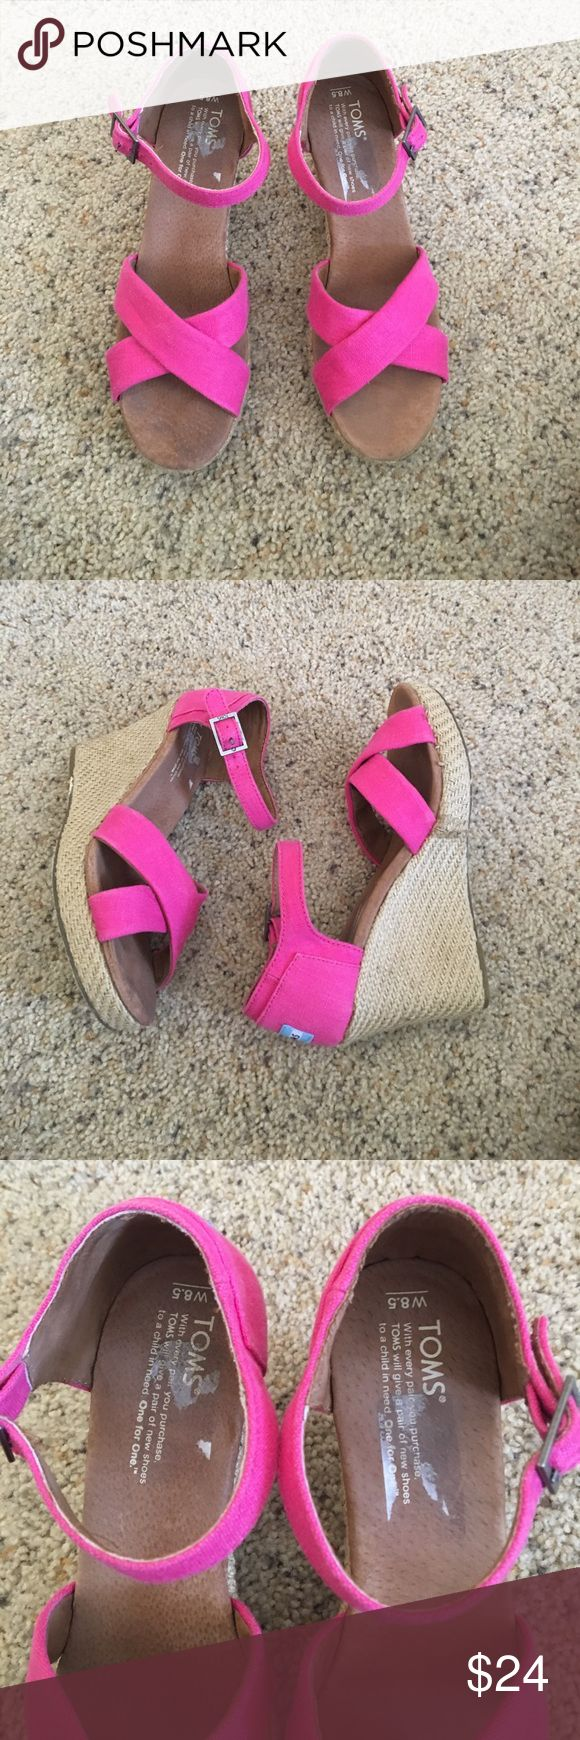 Pink Tom espadrille Sandals Great condition. Only worn a few times. Wear in pics Toms Shoes Espadrilles